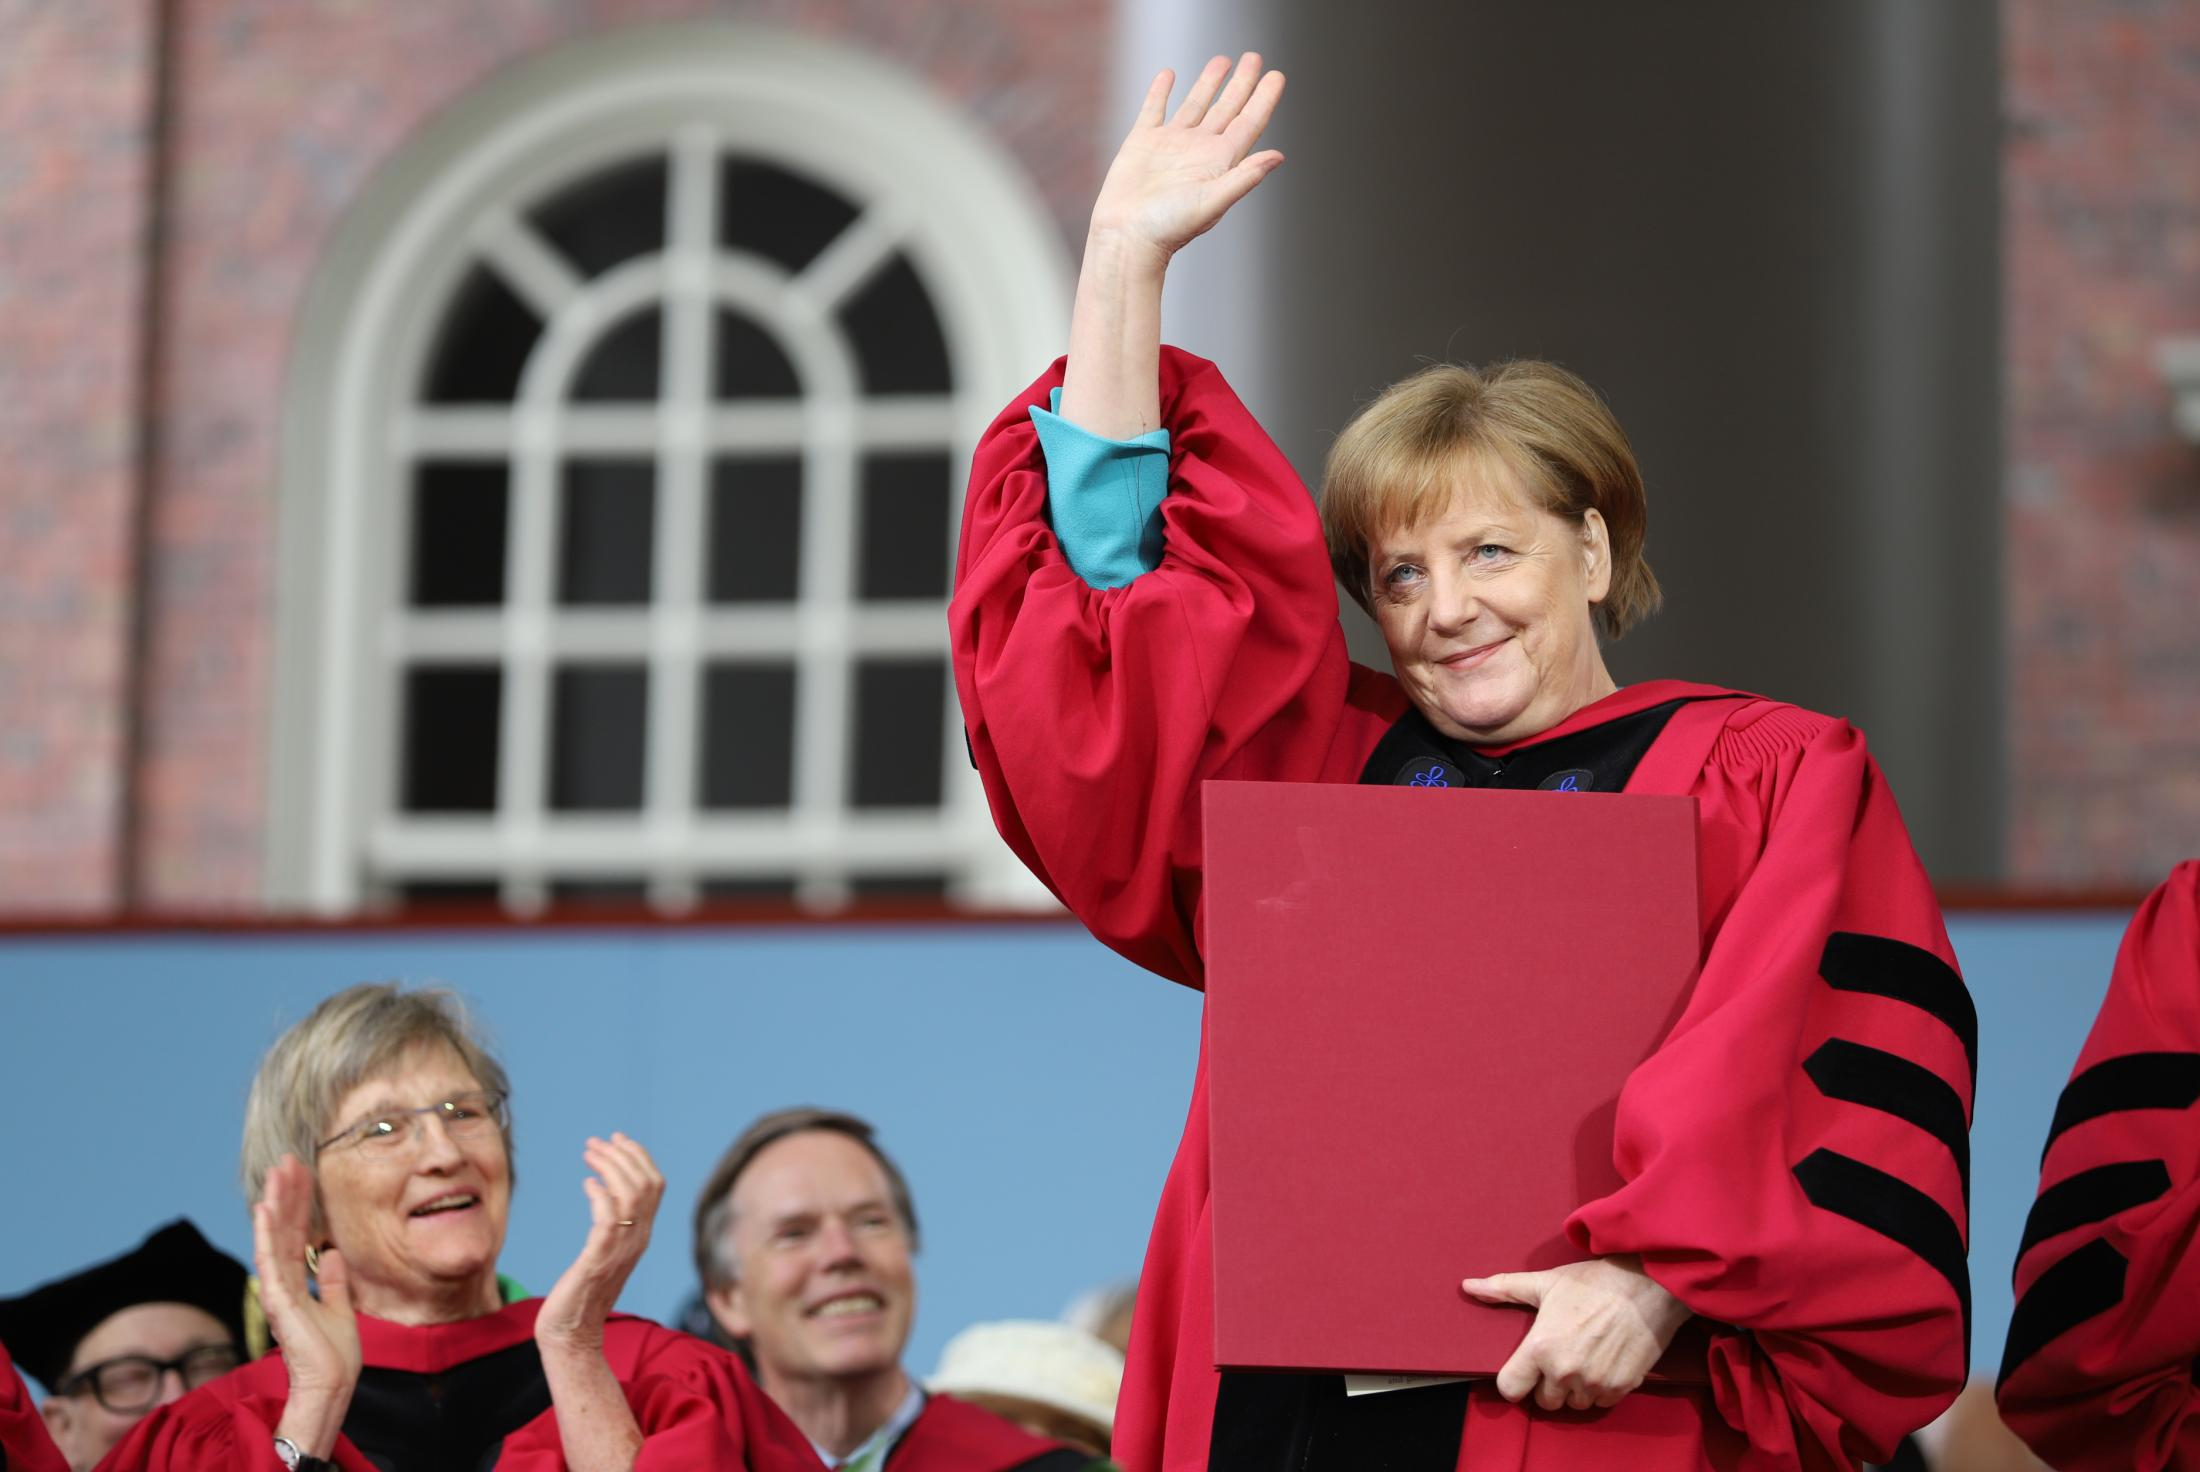 German Chancellor Angela Merkel received an honorary degree from Harvard during the morning exercises at Harvard's 368th Commencement ceremony.